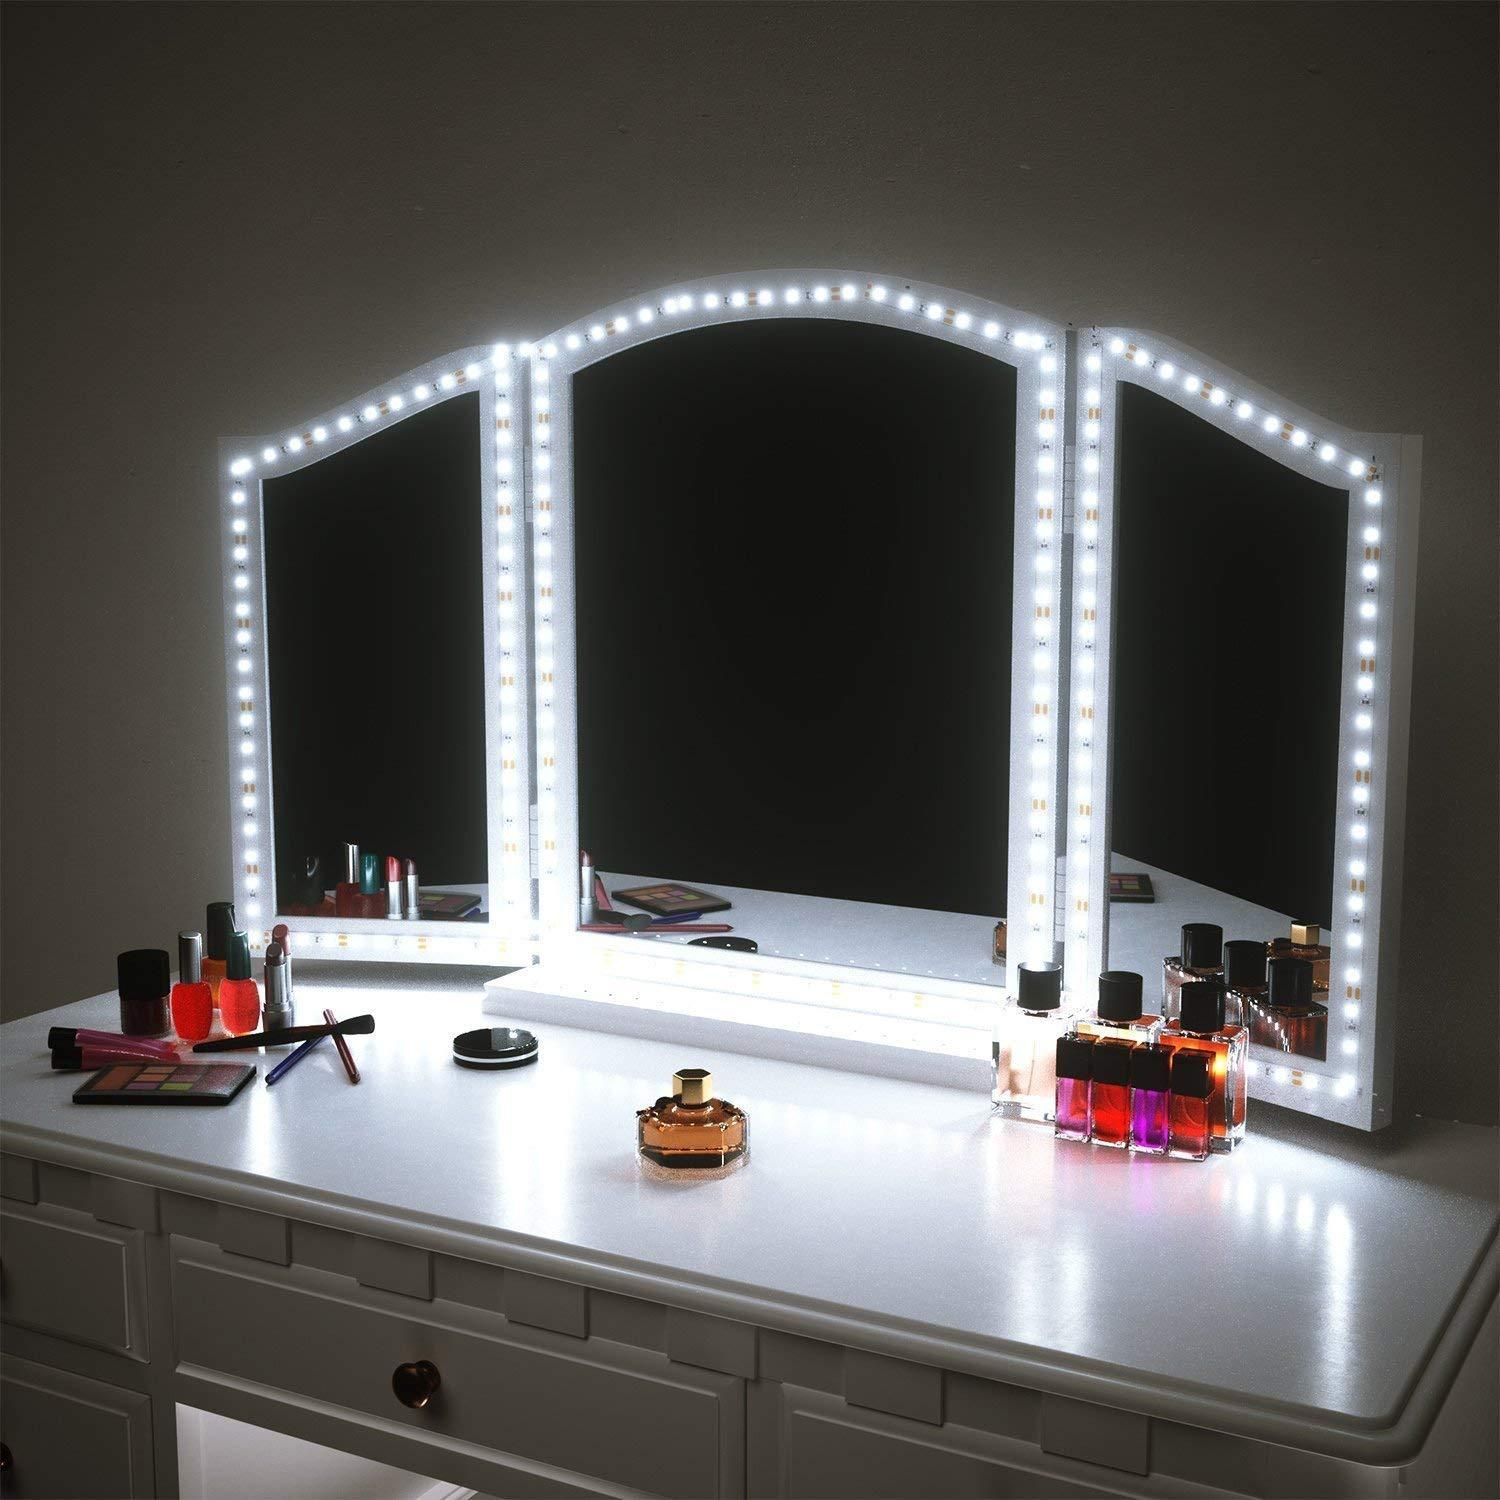 2019 Vanity Mirror Lights Kit For Makeup Dressing Table Set 13ft Flexible Led Strip 6000k Daylight White With Dimmer And Power Supply Diy Vanity Mirror Diy Mirror With Lights Lighted Vanity Mirror